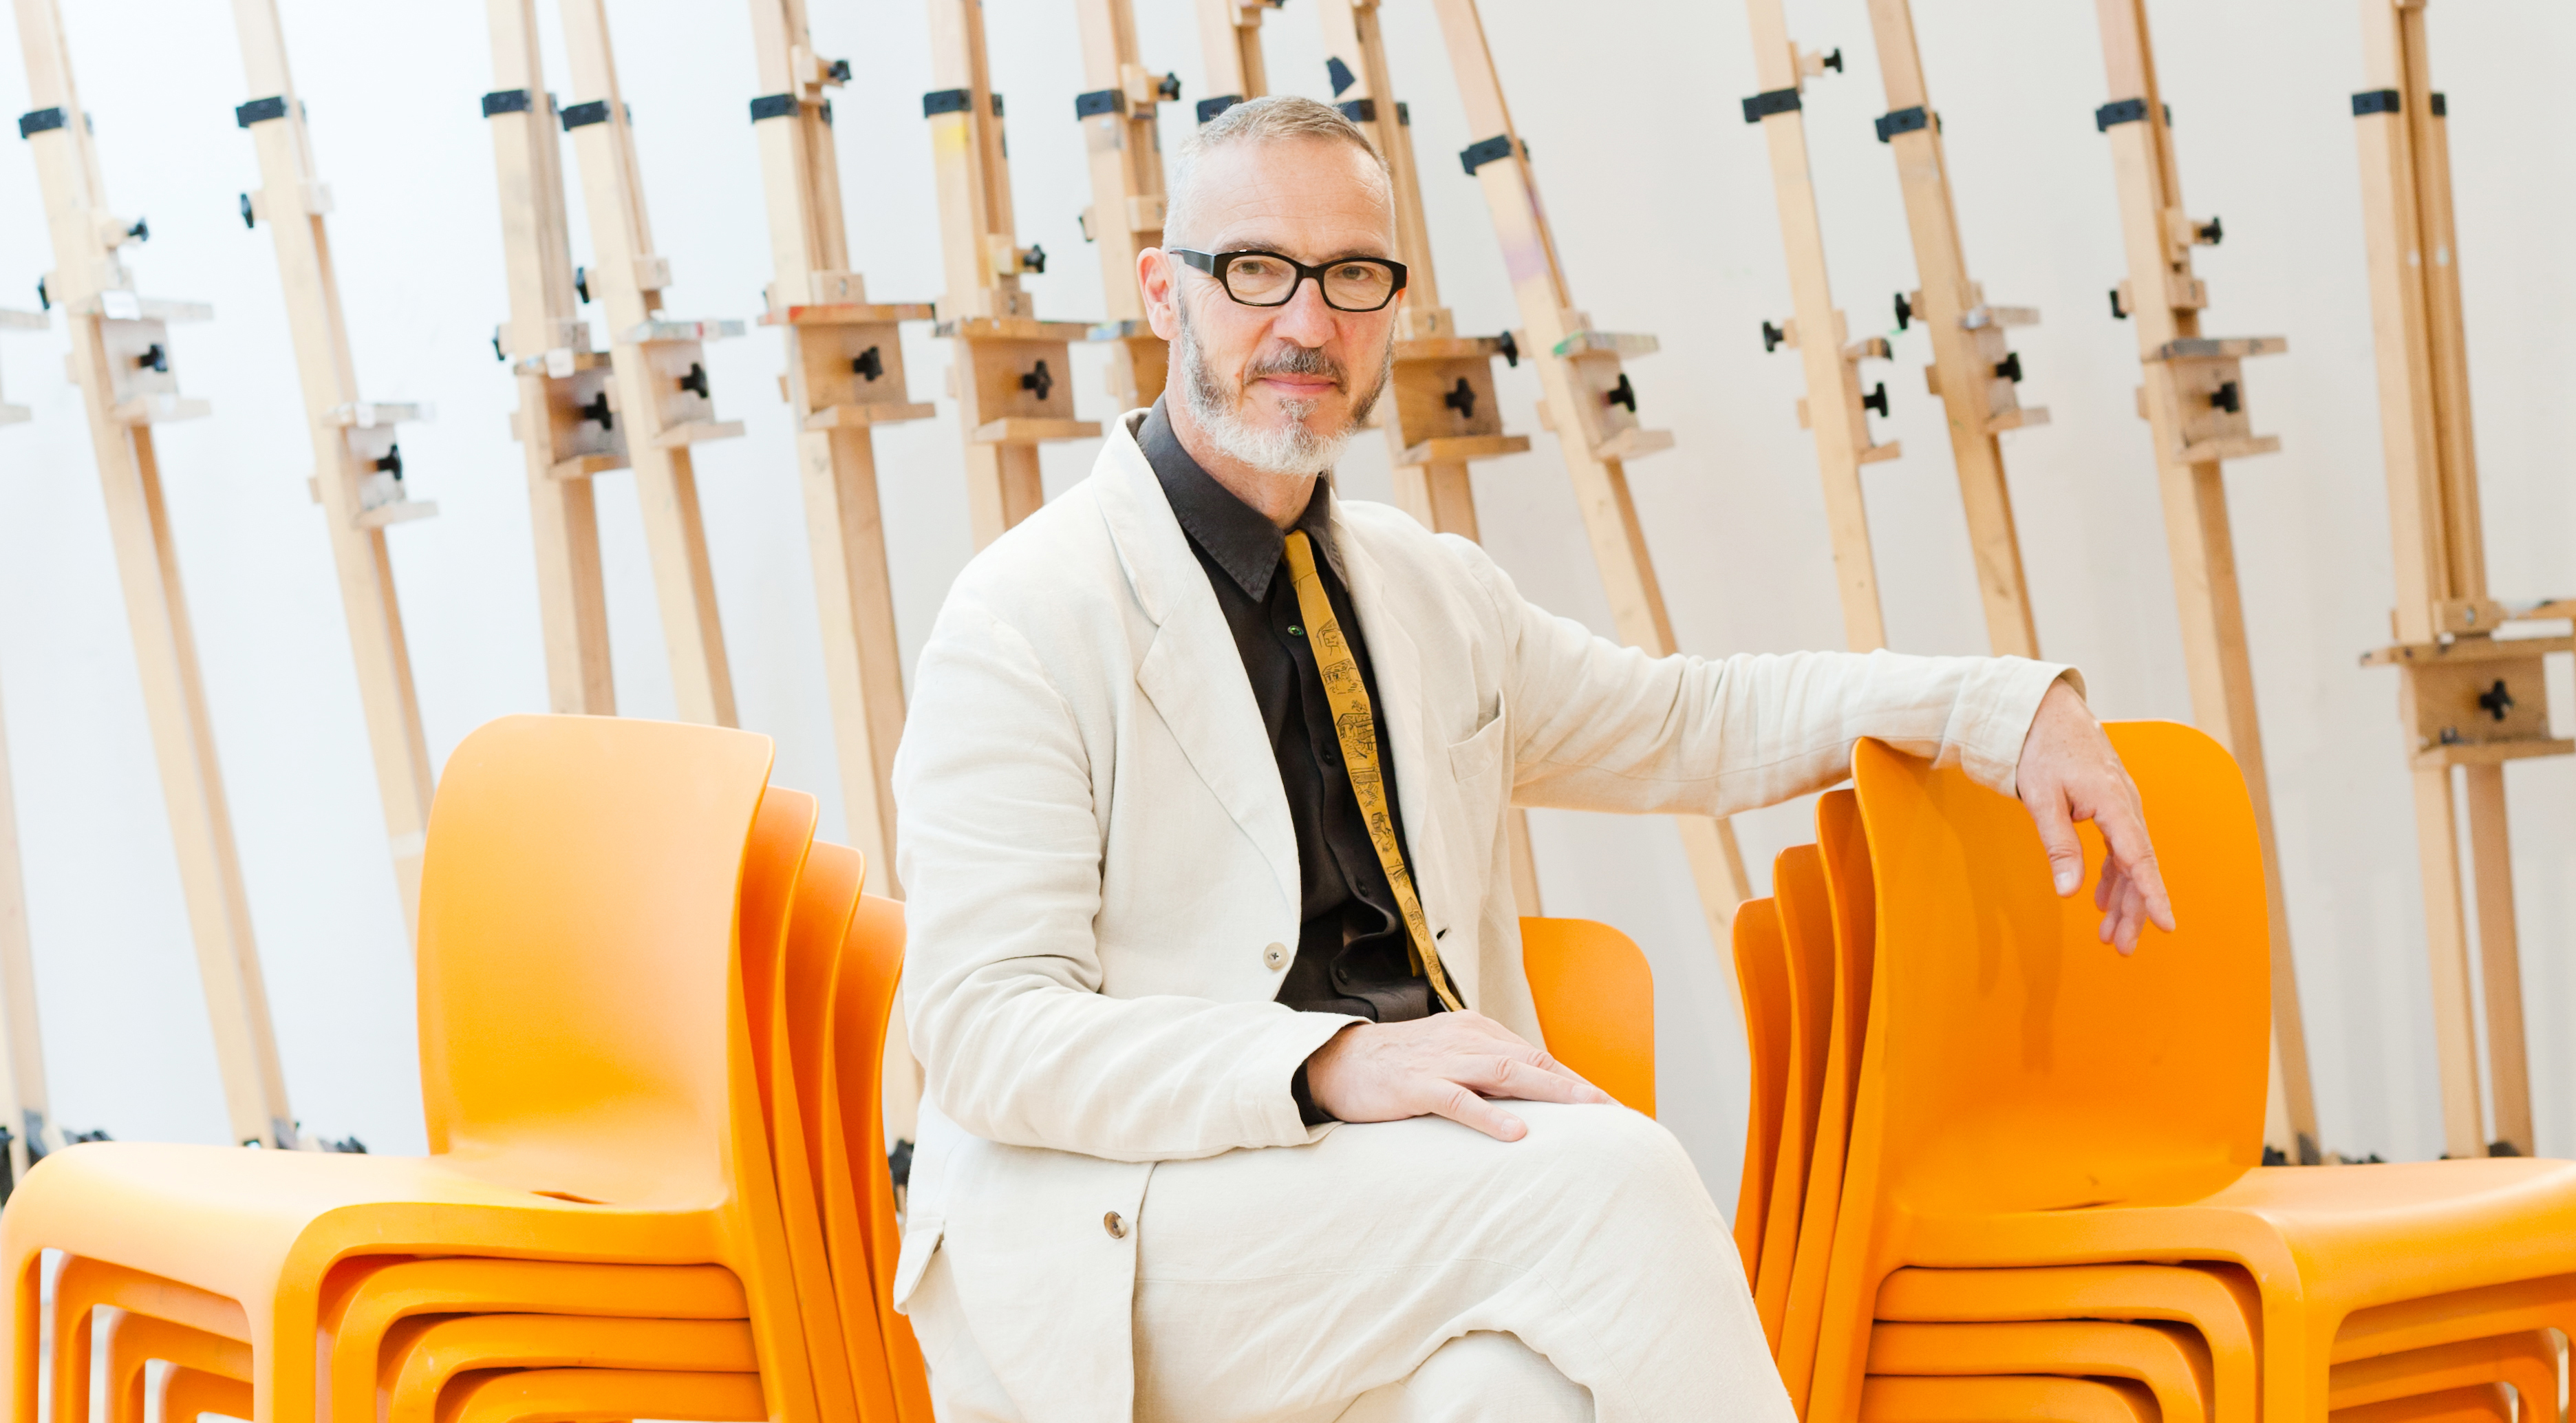 Ian A C Dejardin, Sackler Director of Dulwich Picture Gallery, to join McMichael Canadian Art Collection